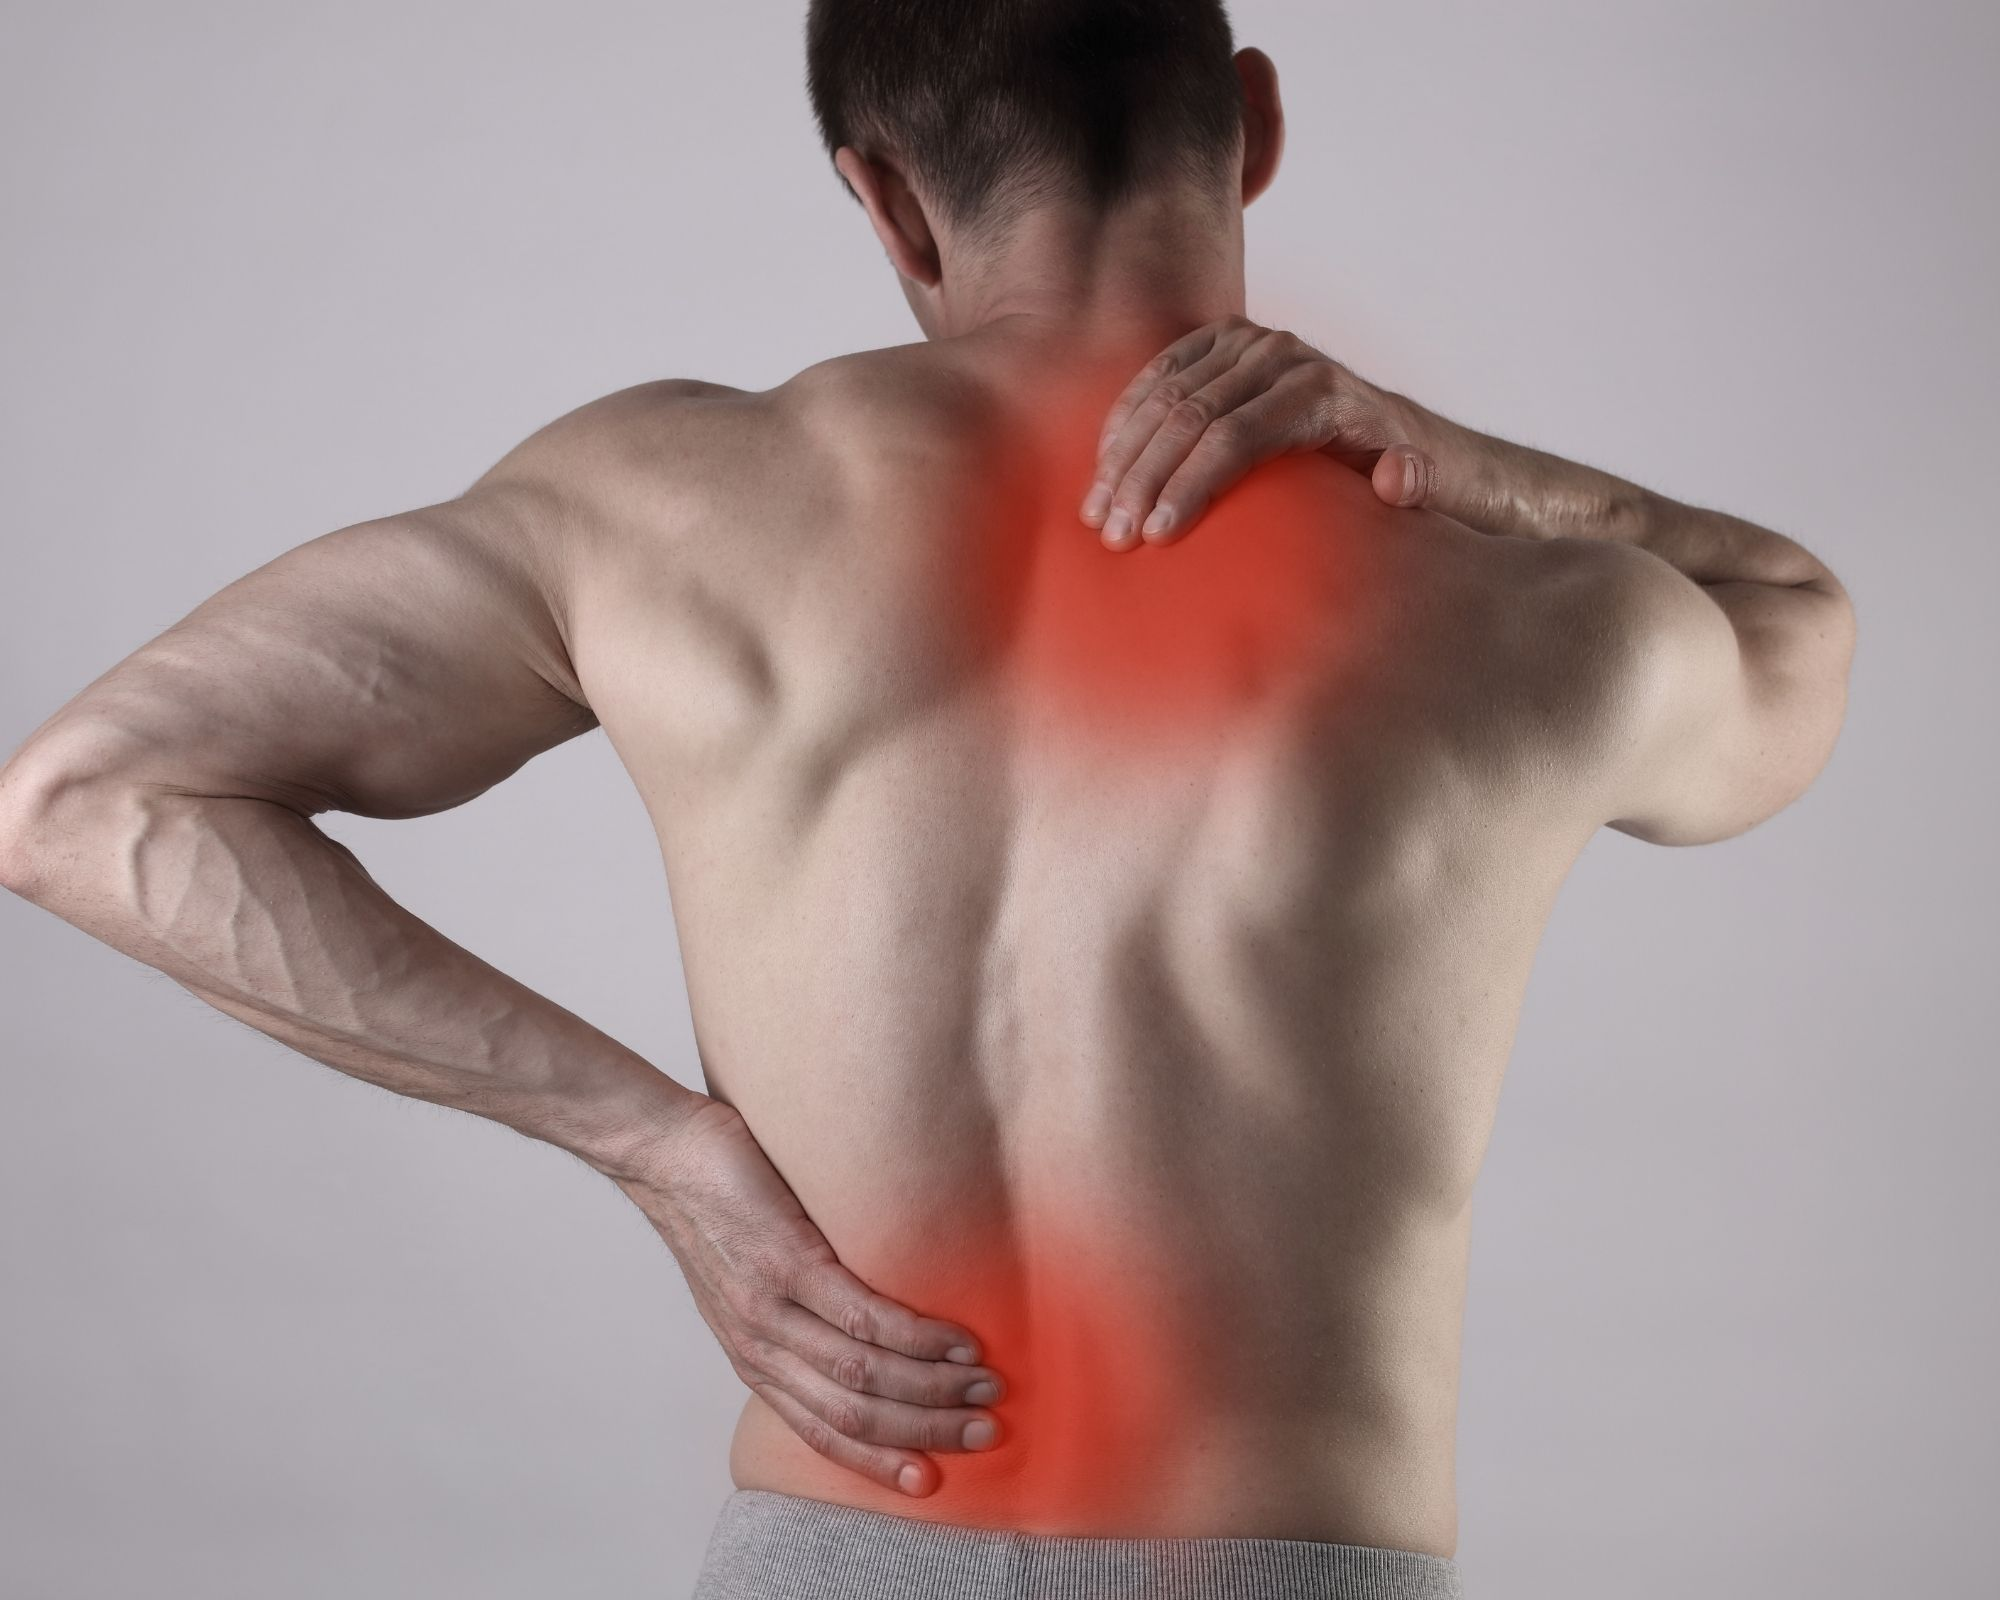 Man with inflammation on his back and shoulders - Formula